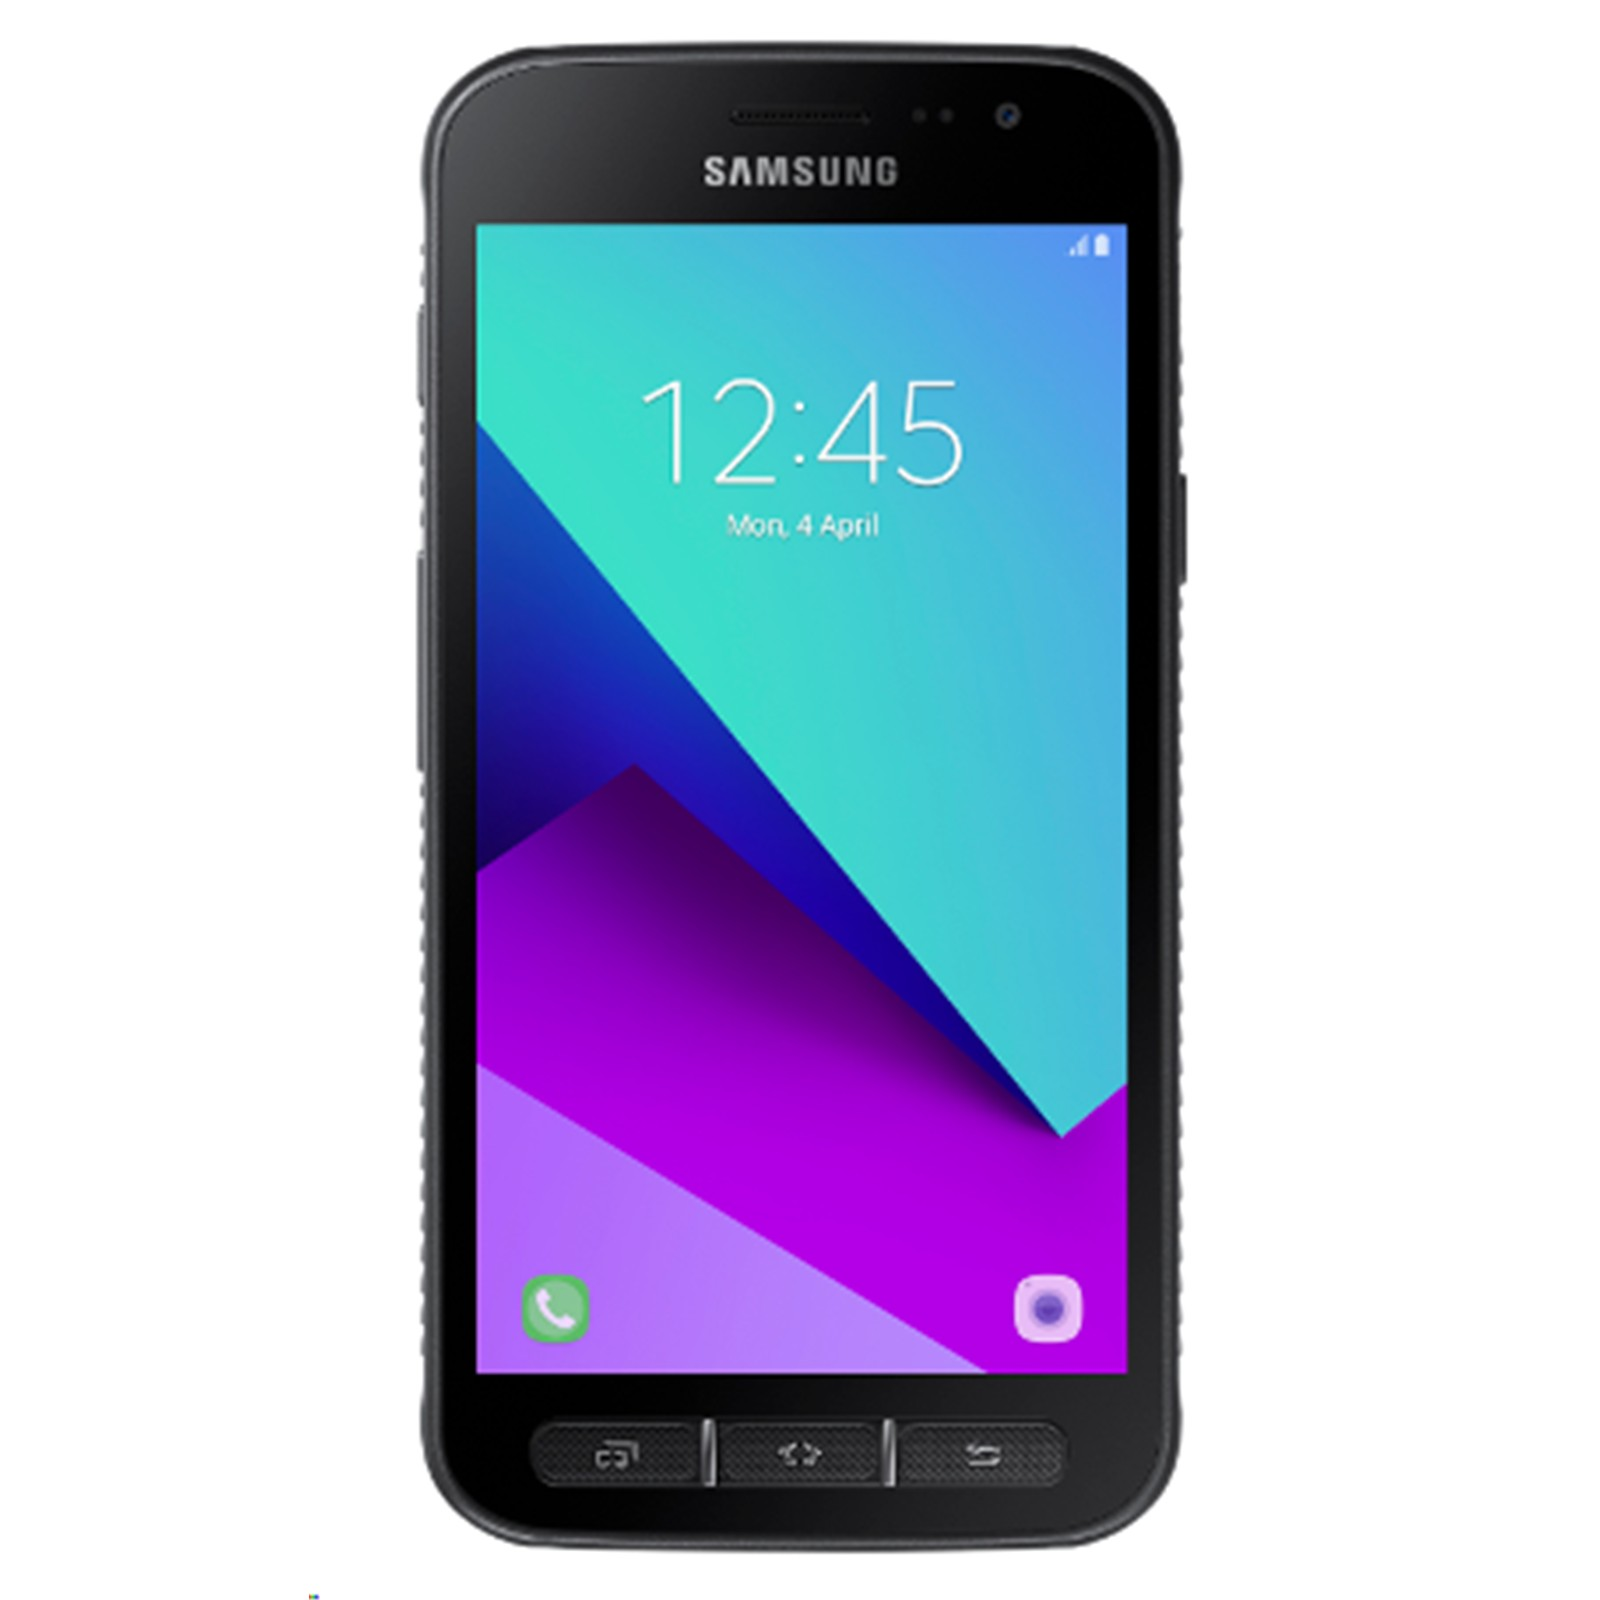 Download COMBINATION file SAMSUNG Galaxy Xcover 4 SM-G390Y build number G390YDXU1AQC4